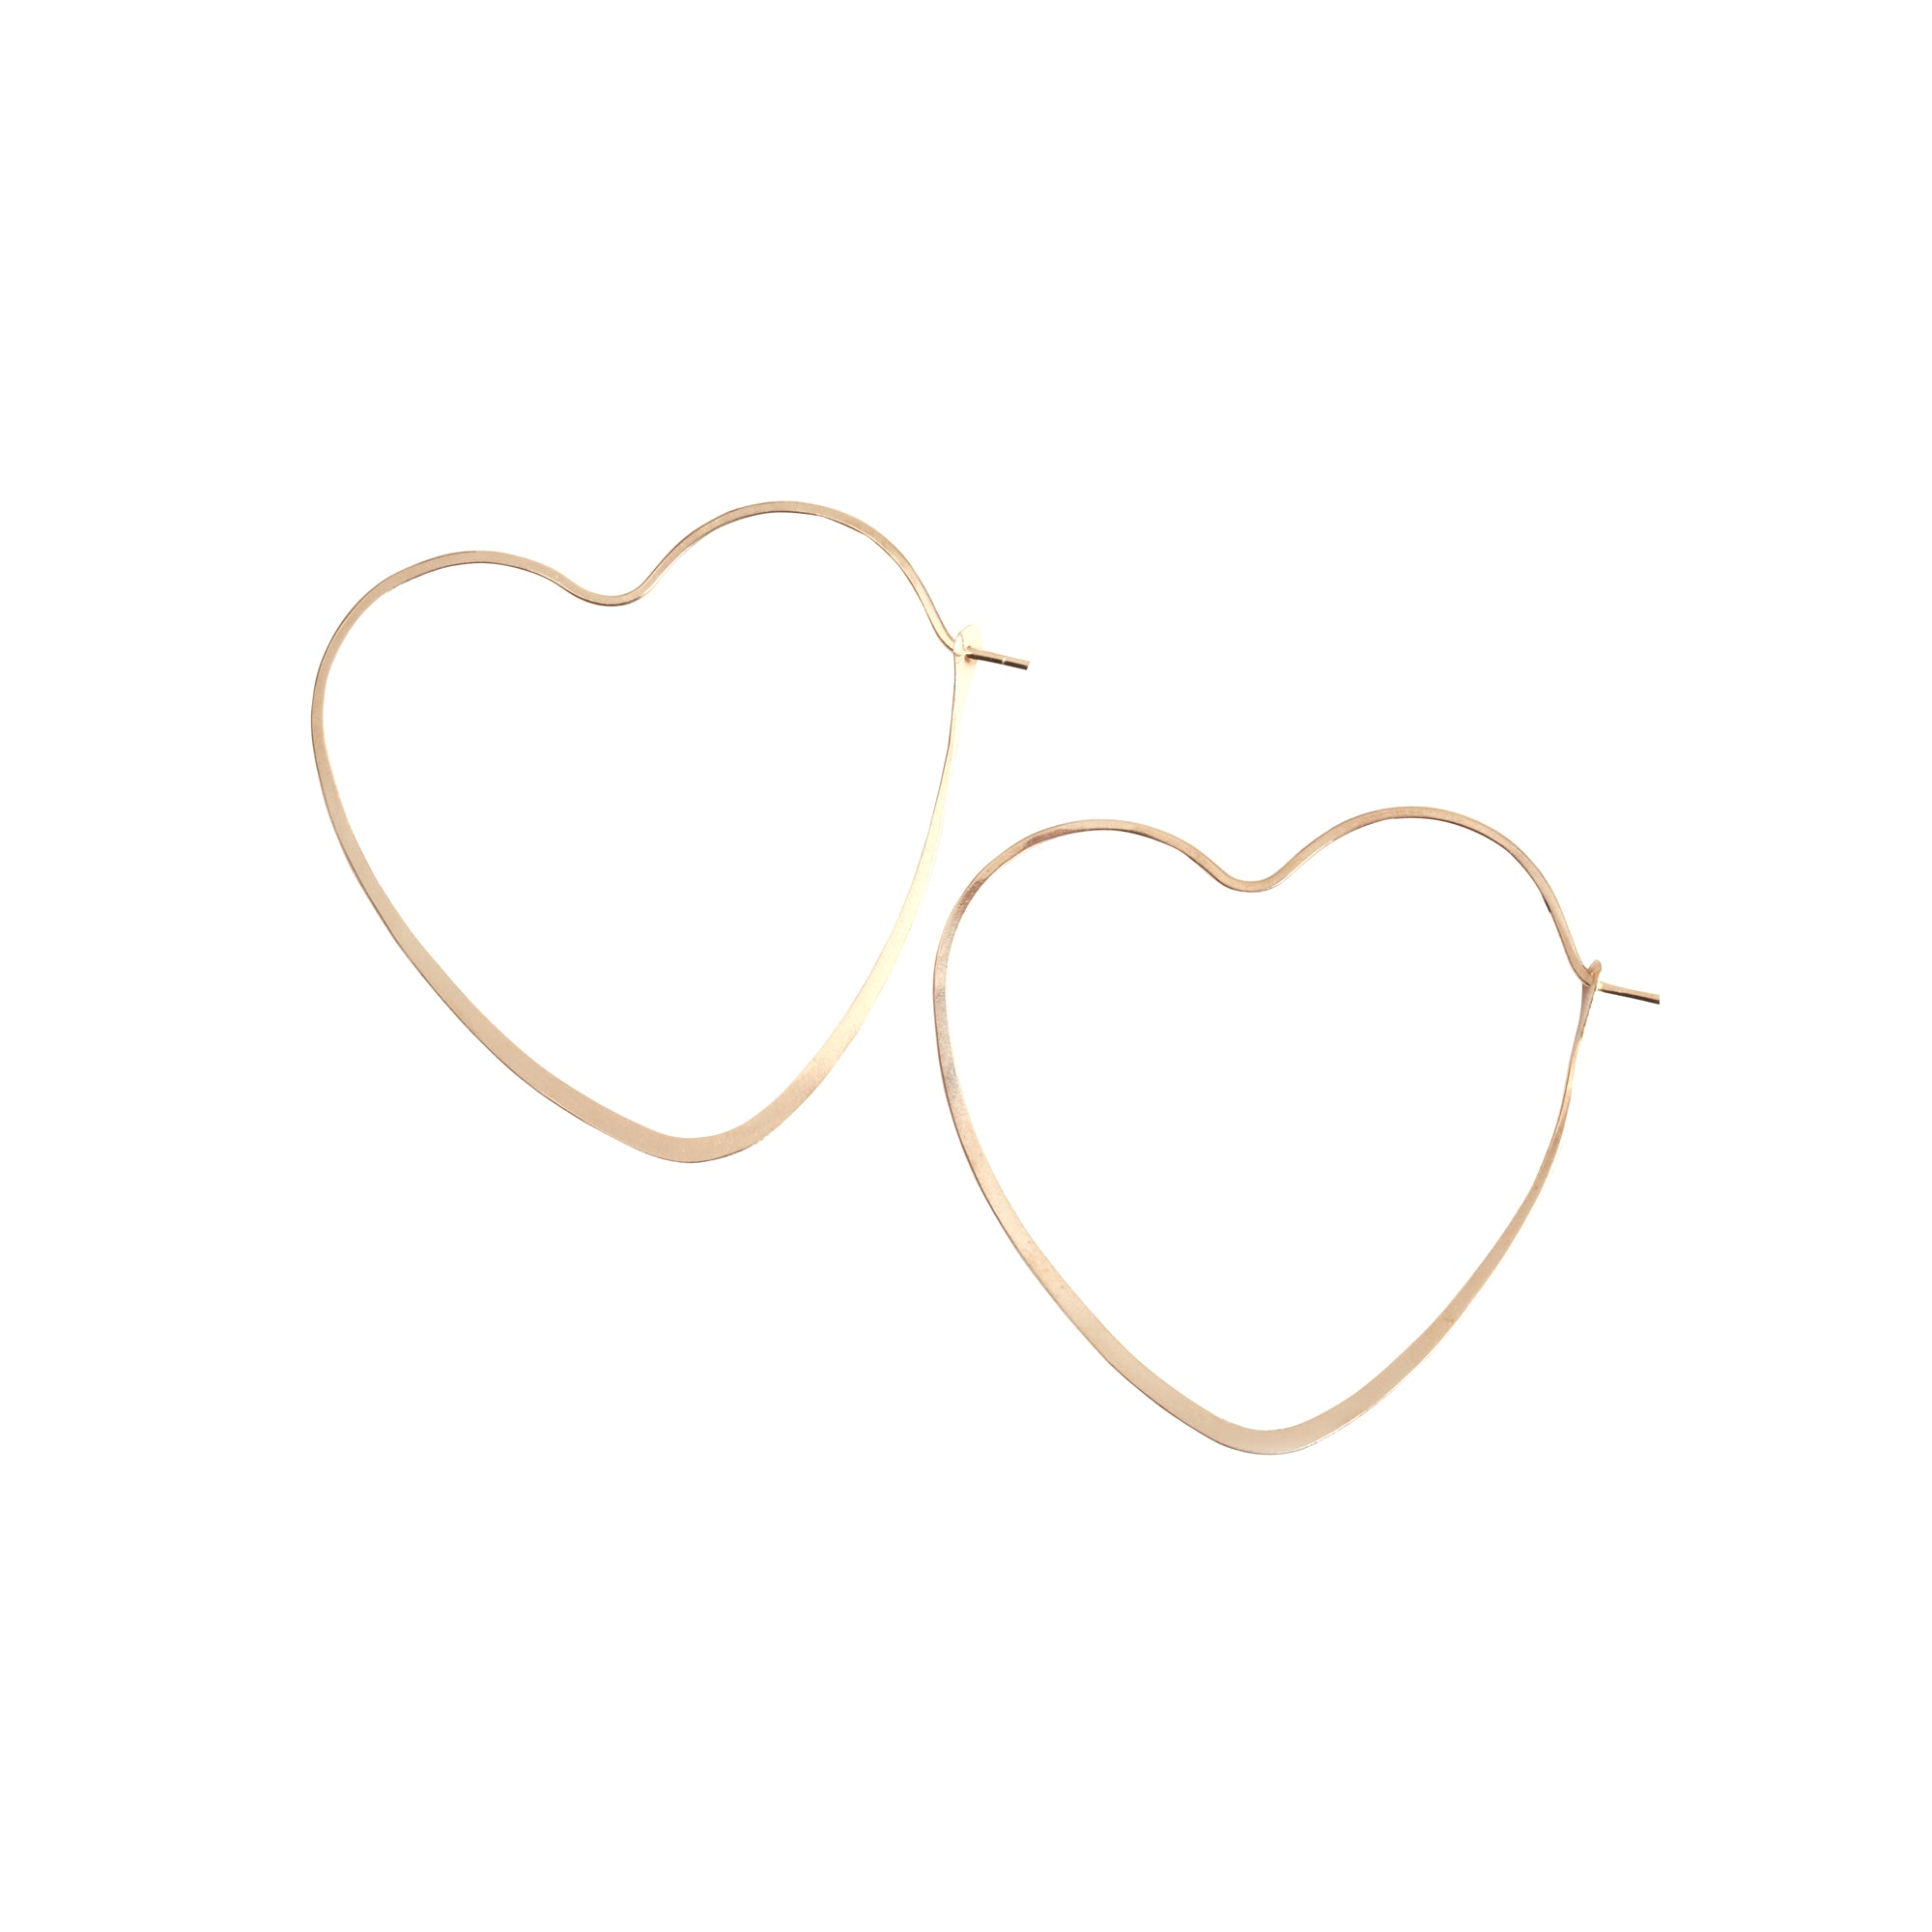 Melissa Joy Manning Heart Shaped Hoops - Gold (L) - Earrings - Broken English Jewelry